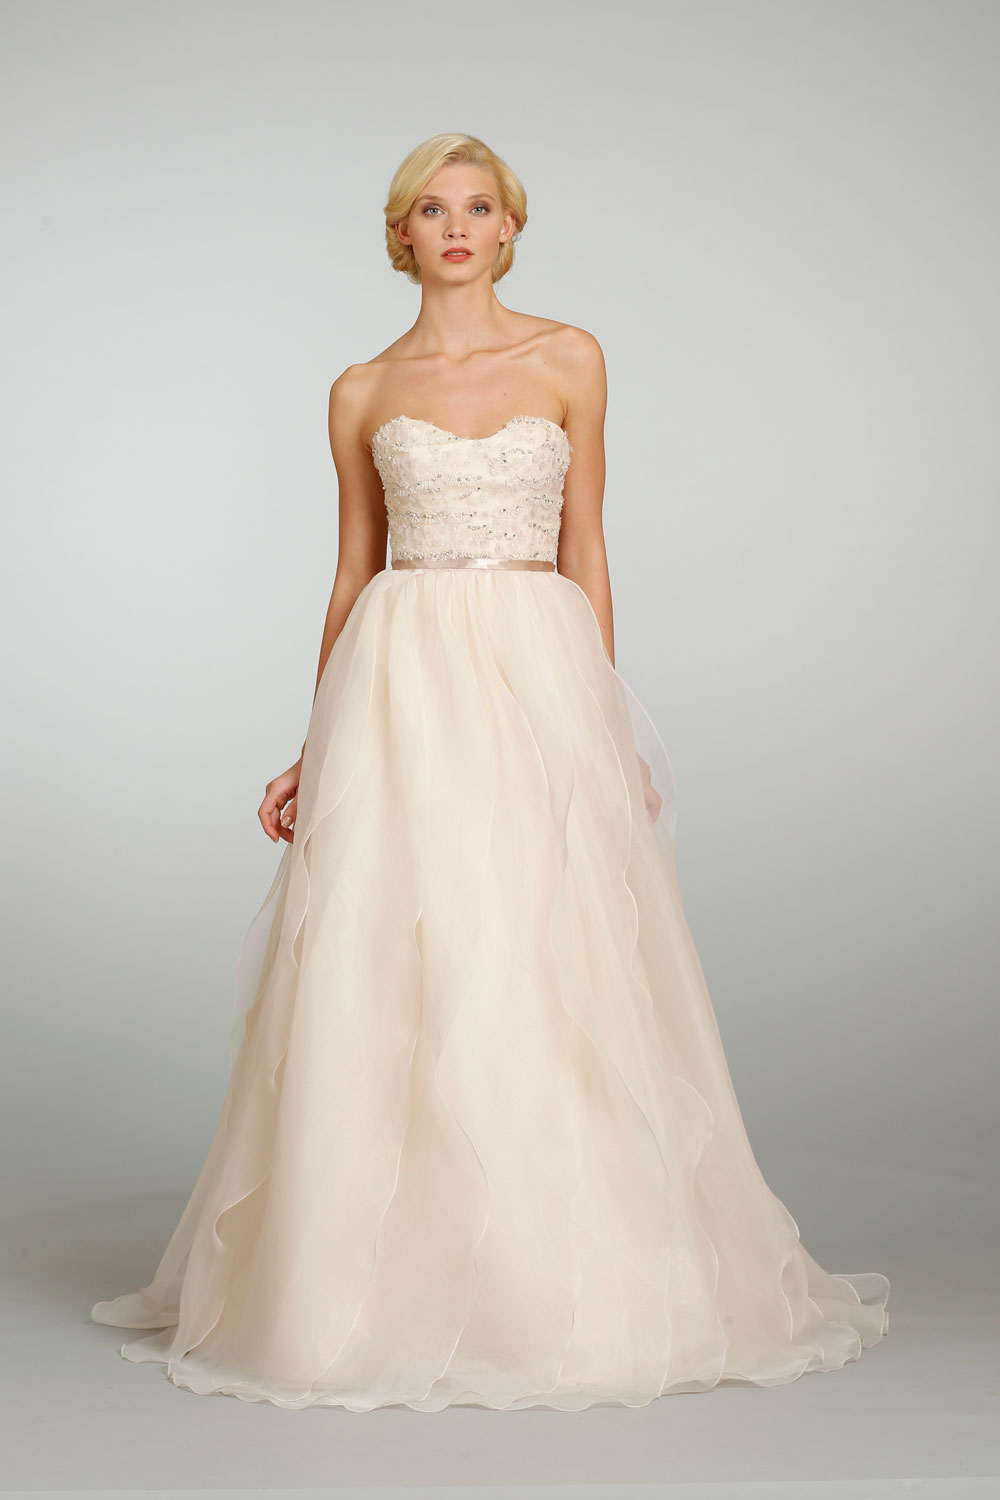 Images Of Blush Wedding Dresses : Jim hjelm bridal gown in blush spring